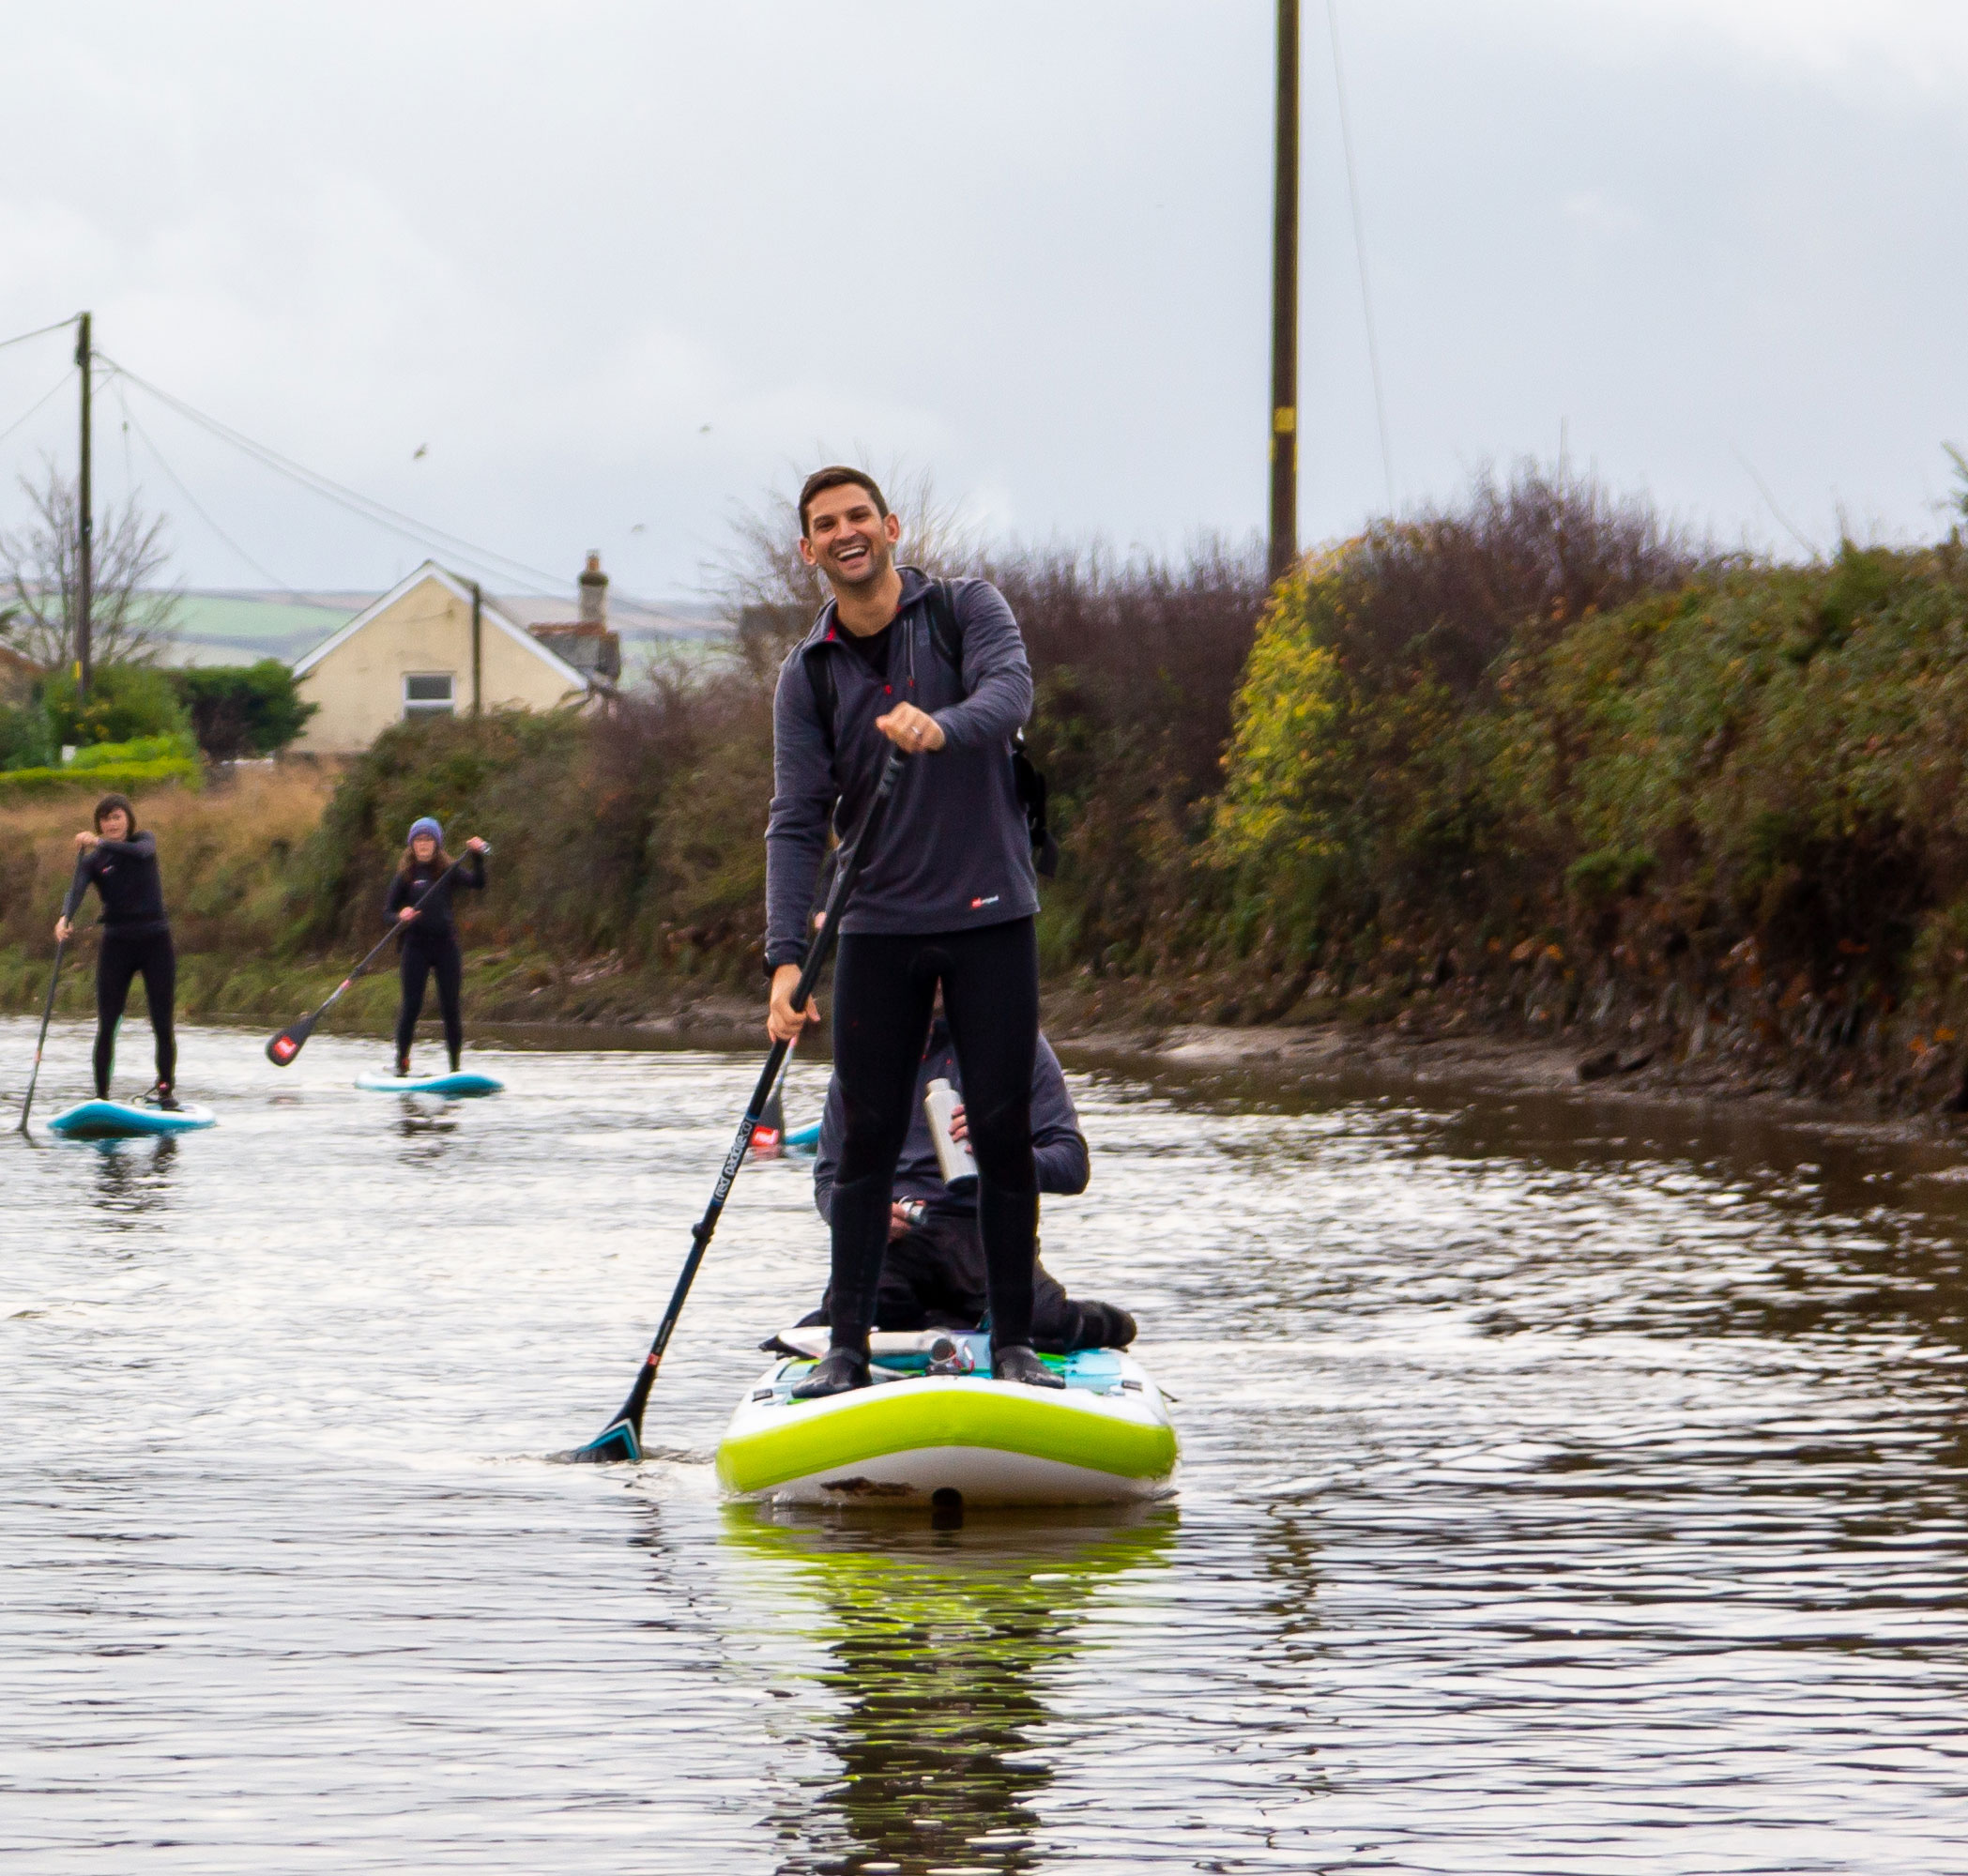 Man paddles on Tandem inflatable SUP